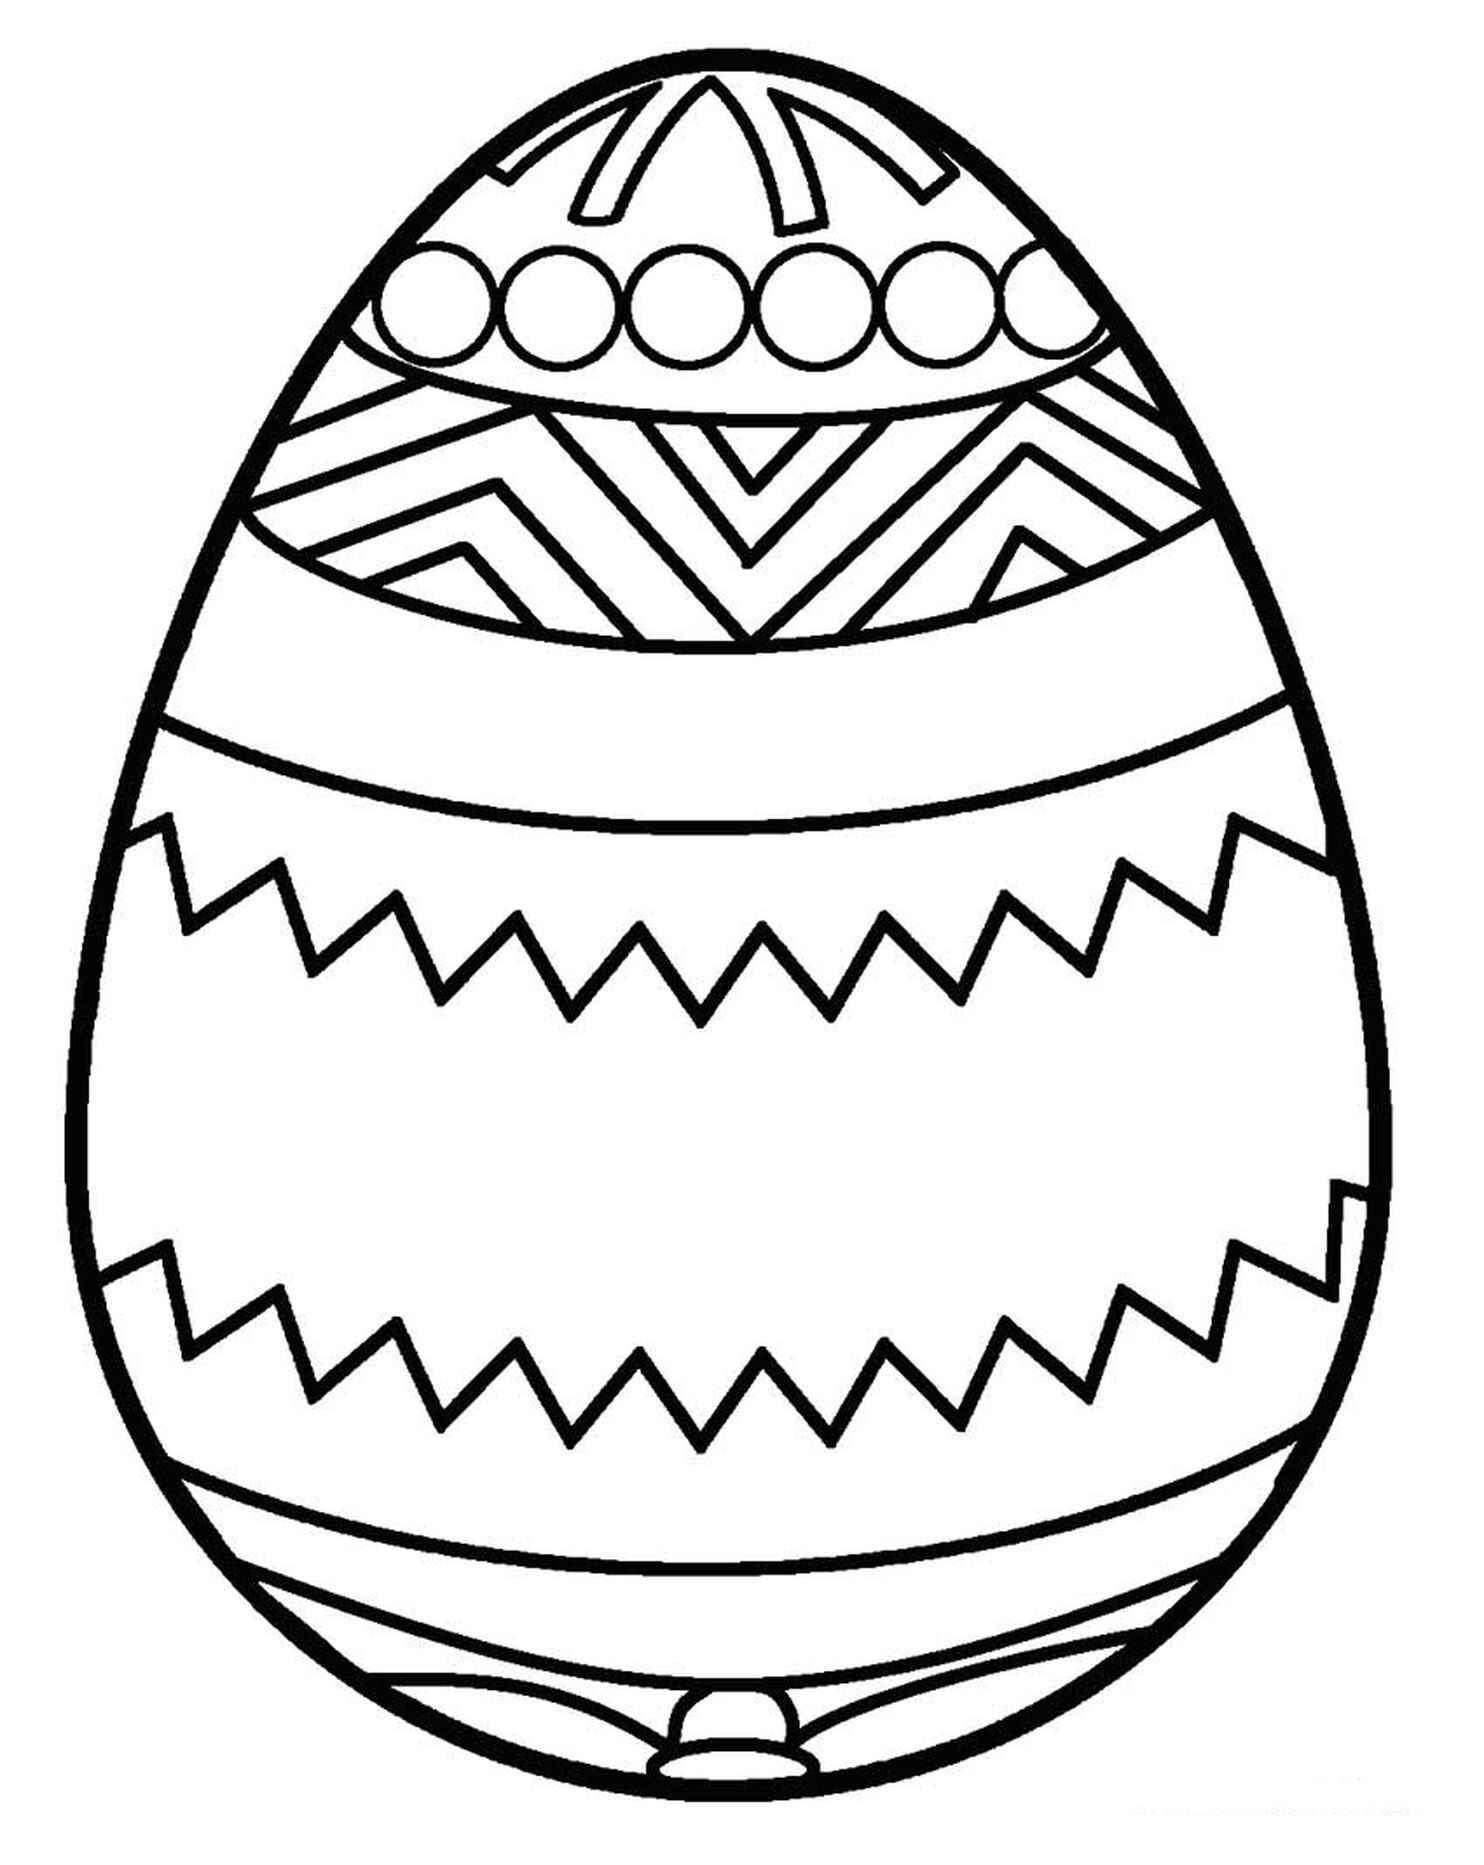 Abstract Design Easter Egg Coloring Page For Kids